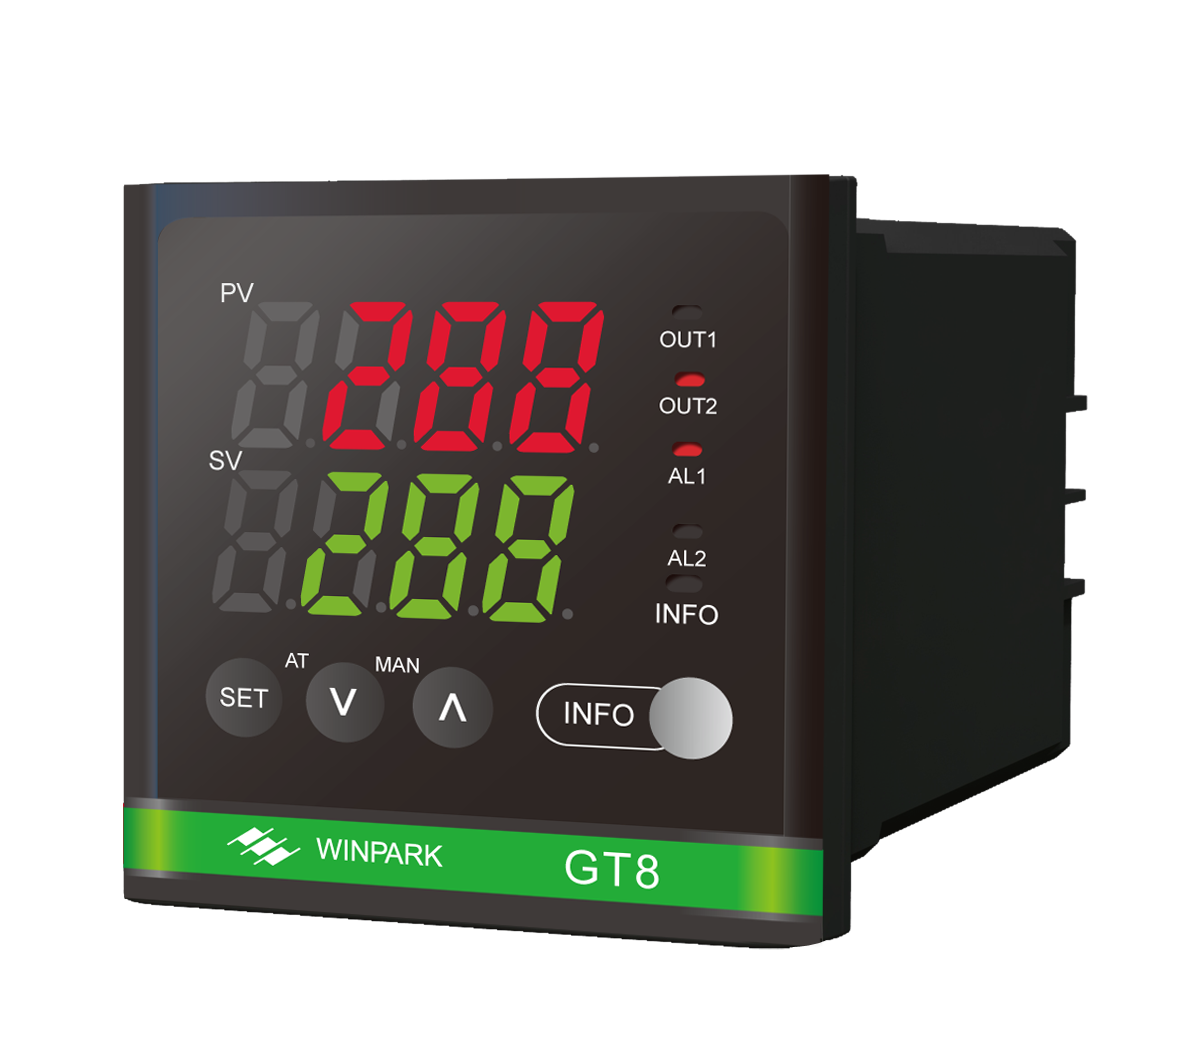 extruder temperature controller Winpark GT8-ATL110 solar stock tank heater (sincerely looking for cooperation)